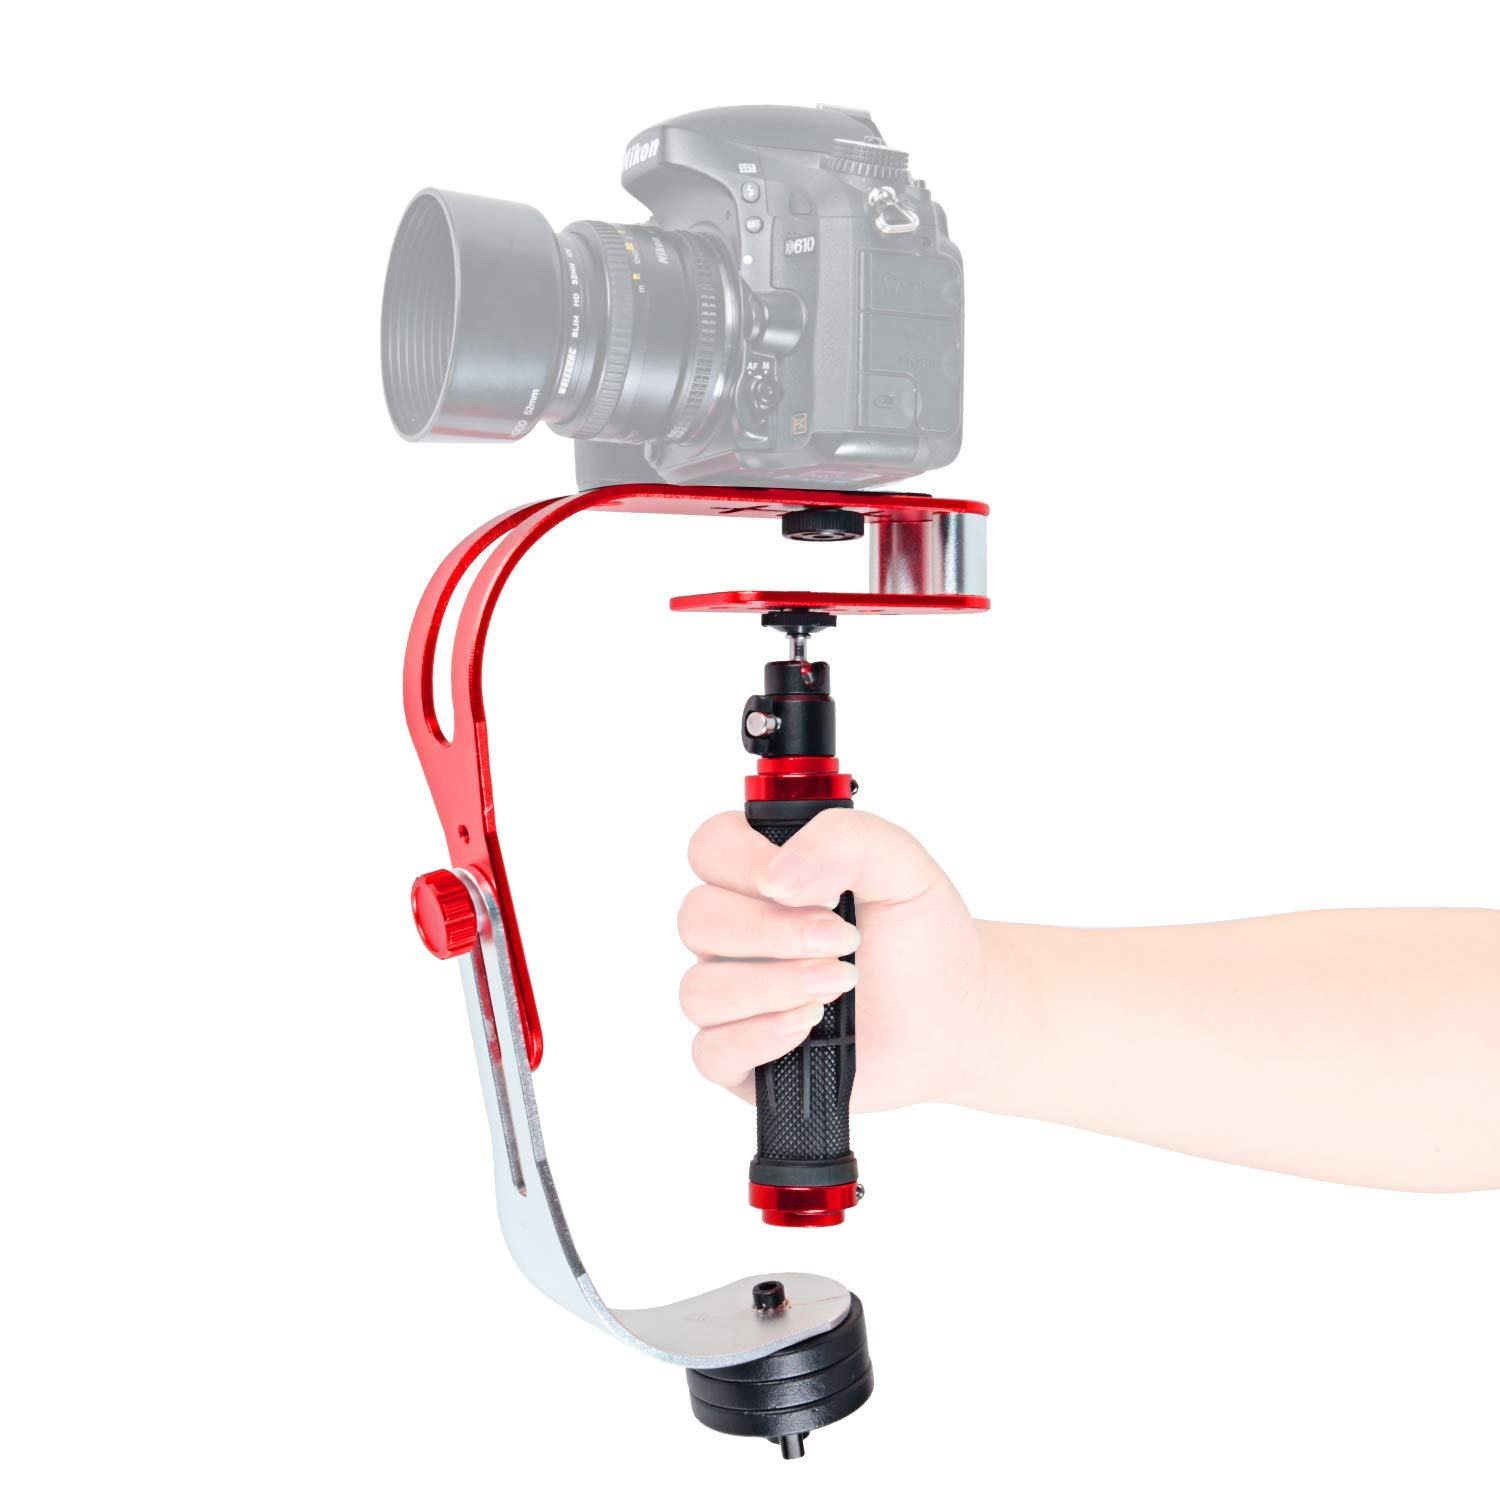 House of Quirk Camera Stabilizer, Pro DSLR Video Stabilizer